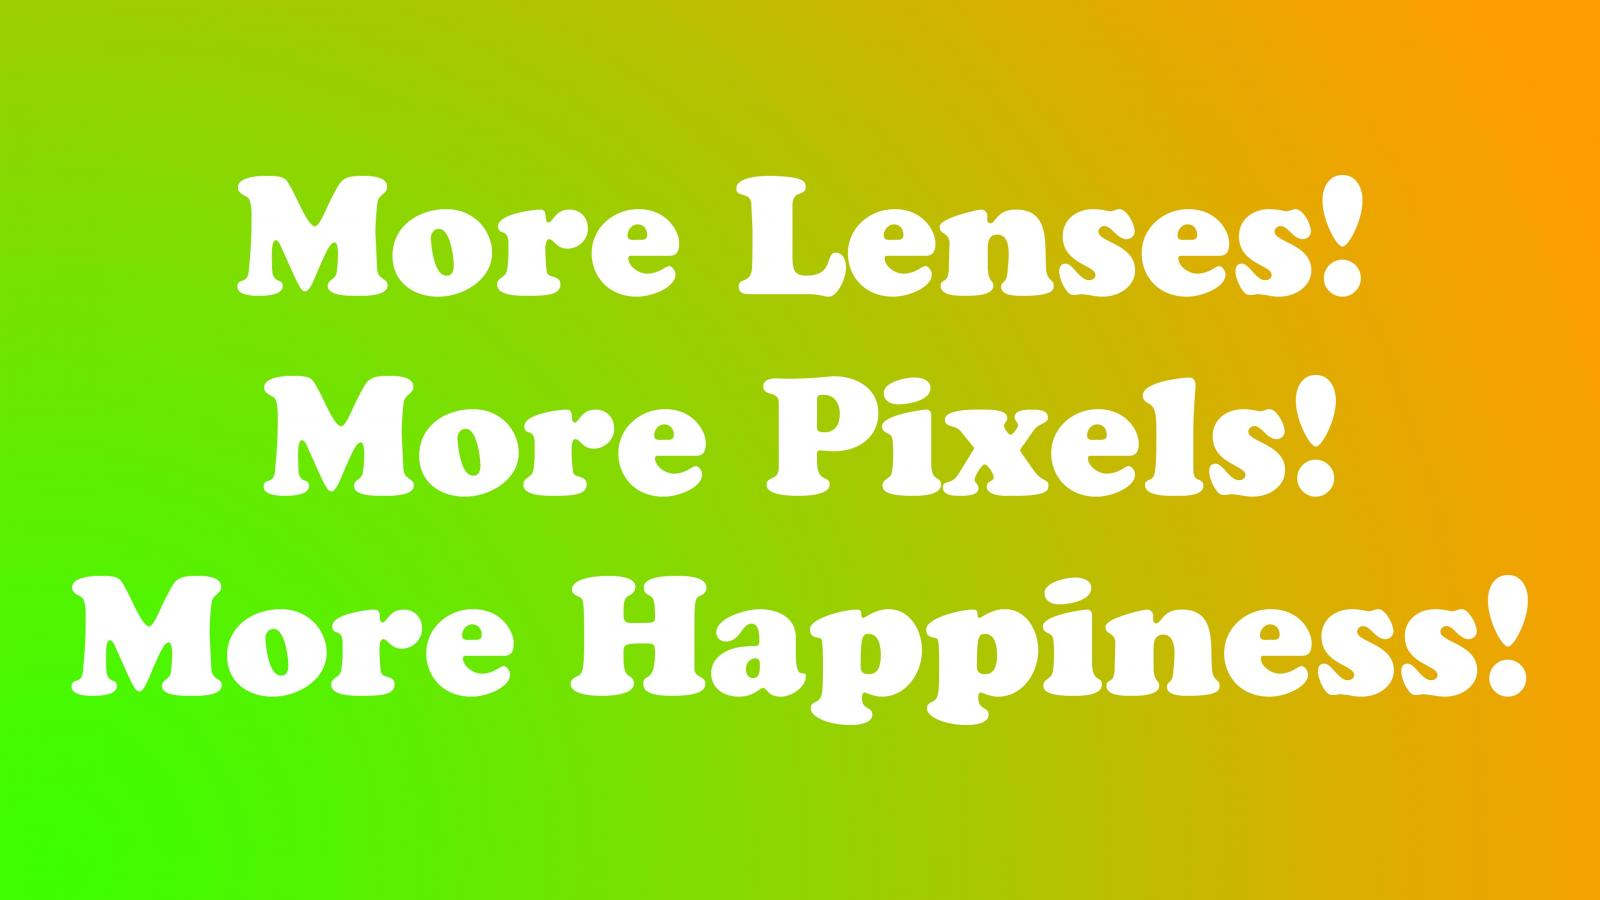 More Lenses! More Pixels! More Happiness!